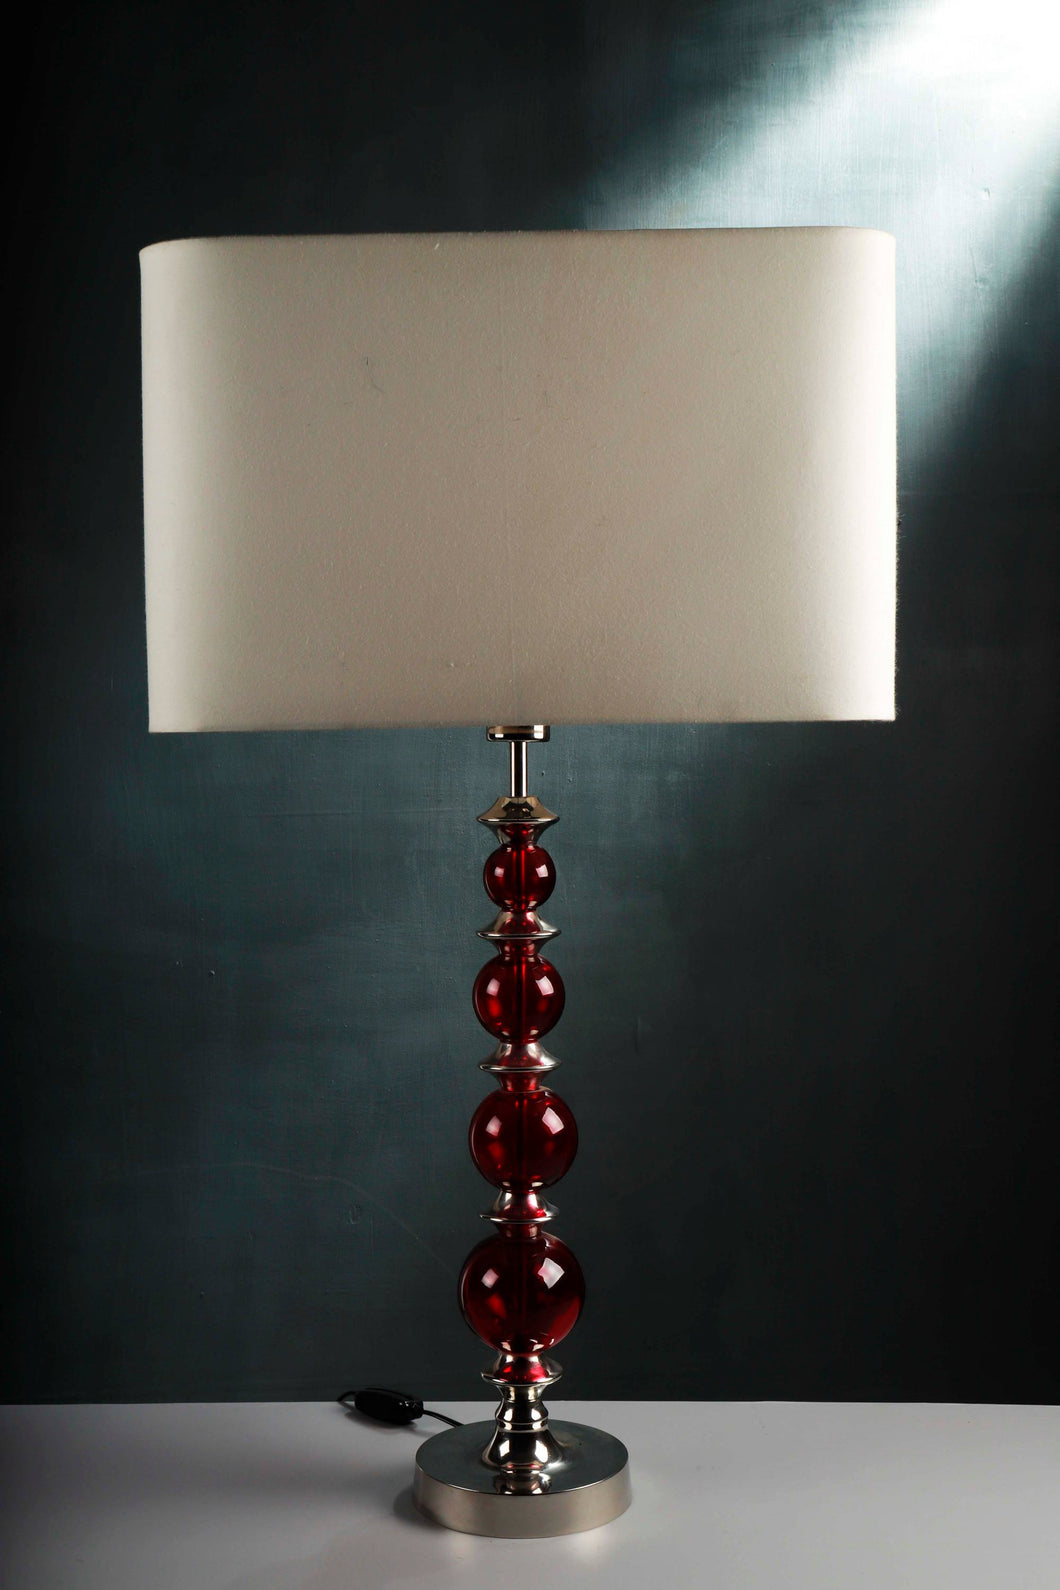 Gum Ball Red Glass Table Lamp with 2 [WHITE, BLACK] Lampshade